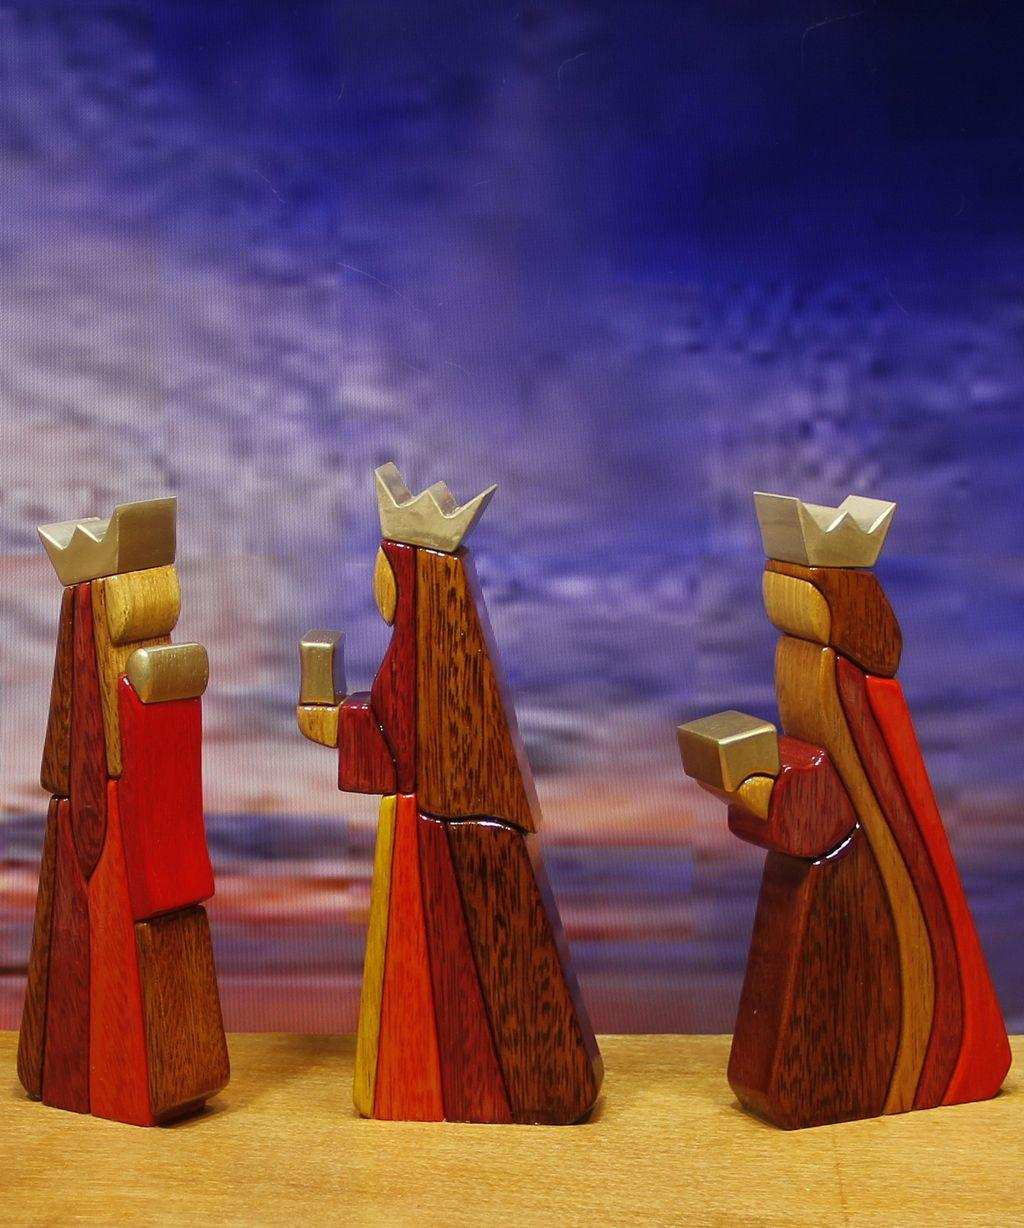 Handmade Wooden Nativity Sets – Choose the Latest One from WoodFlair